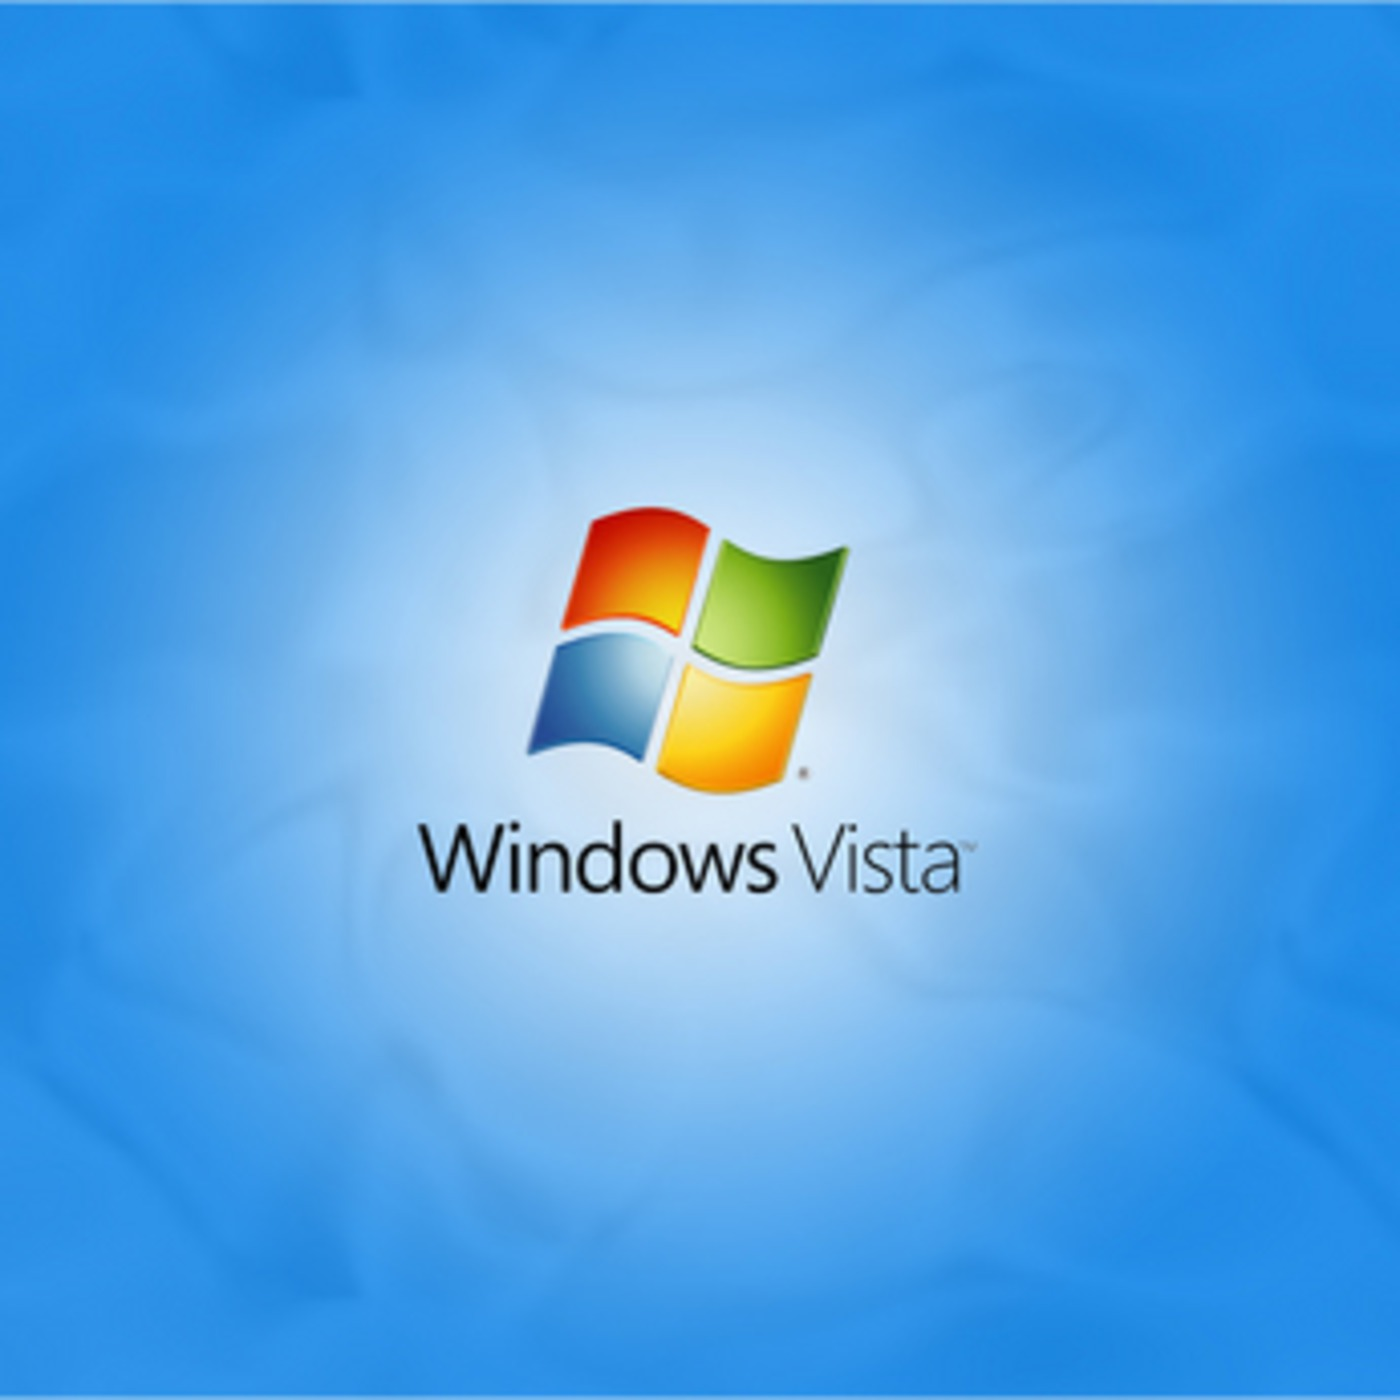 Vidcast On Windows Vista And Apple Anouncements The Best